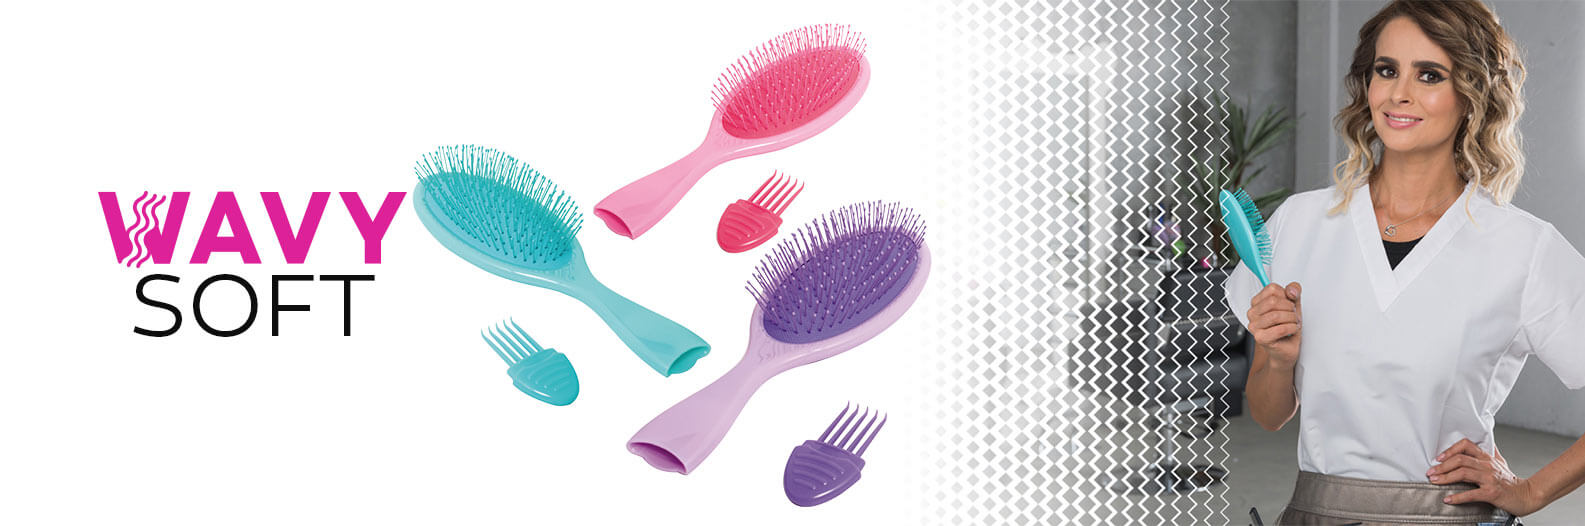 wavy brush soft - cepillo desenredante